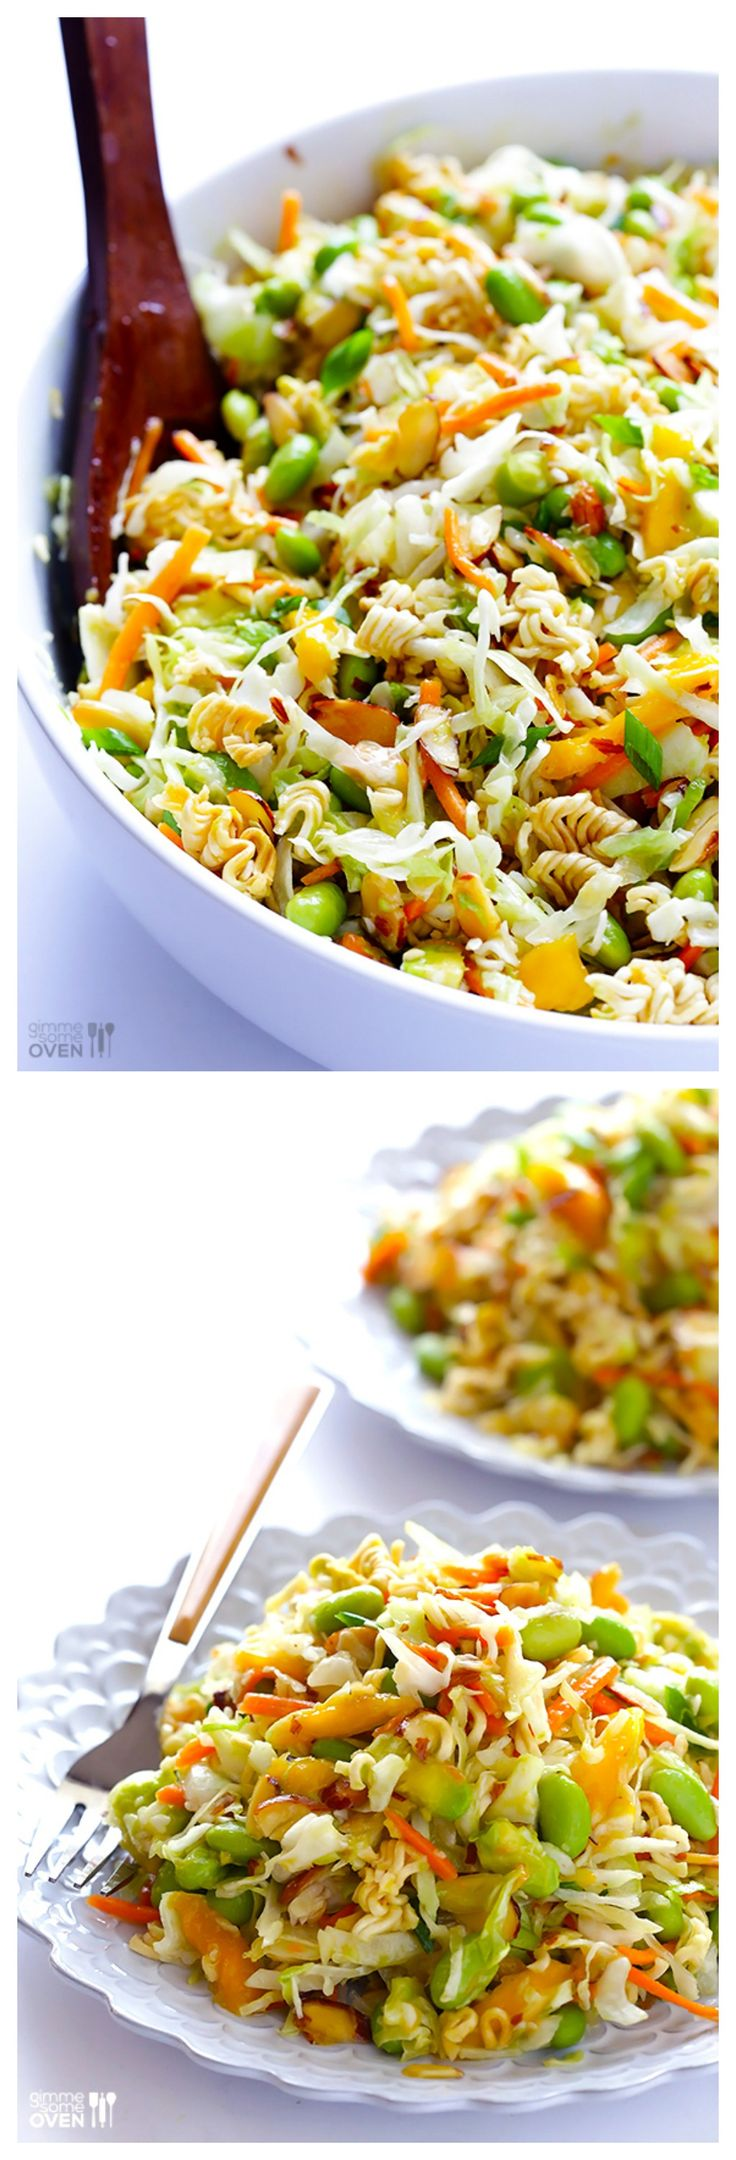 Crunchy Asian Ramen Noodle Salad -- ready to go in 10 min, and modernized with fresher ingredients! gimmesomeoven.com #salad #vegetarian: Asian Ramen, Ramen Noodles Salad, Soups Salad, Ramen Noodle Salad, 10 Minutes, Noodle Salads, Crunchi Asian, Recipes Salad, Fresher Ingredients